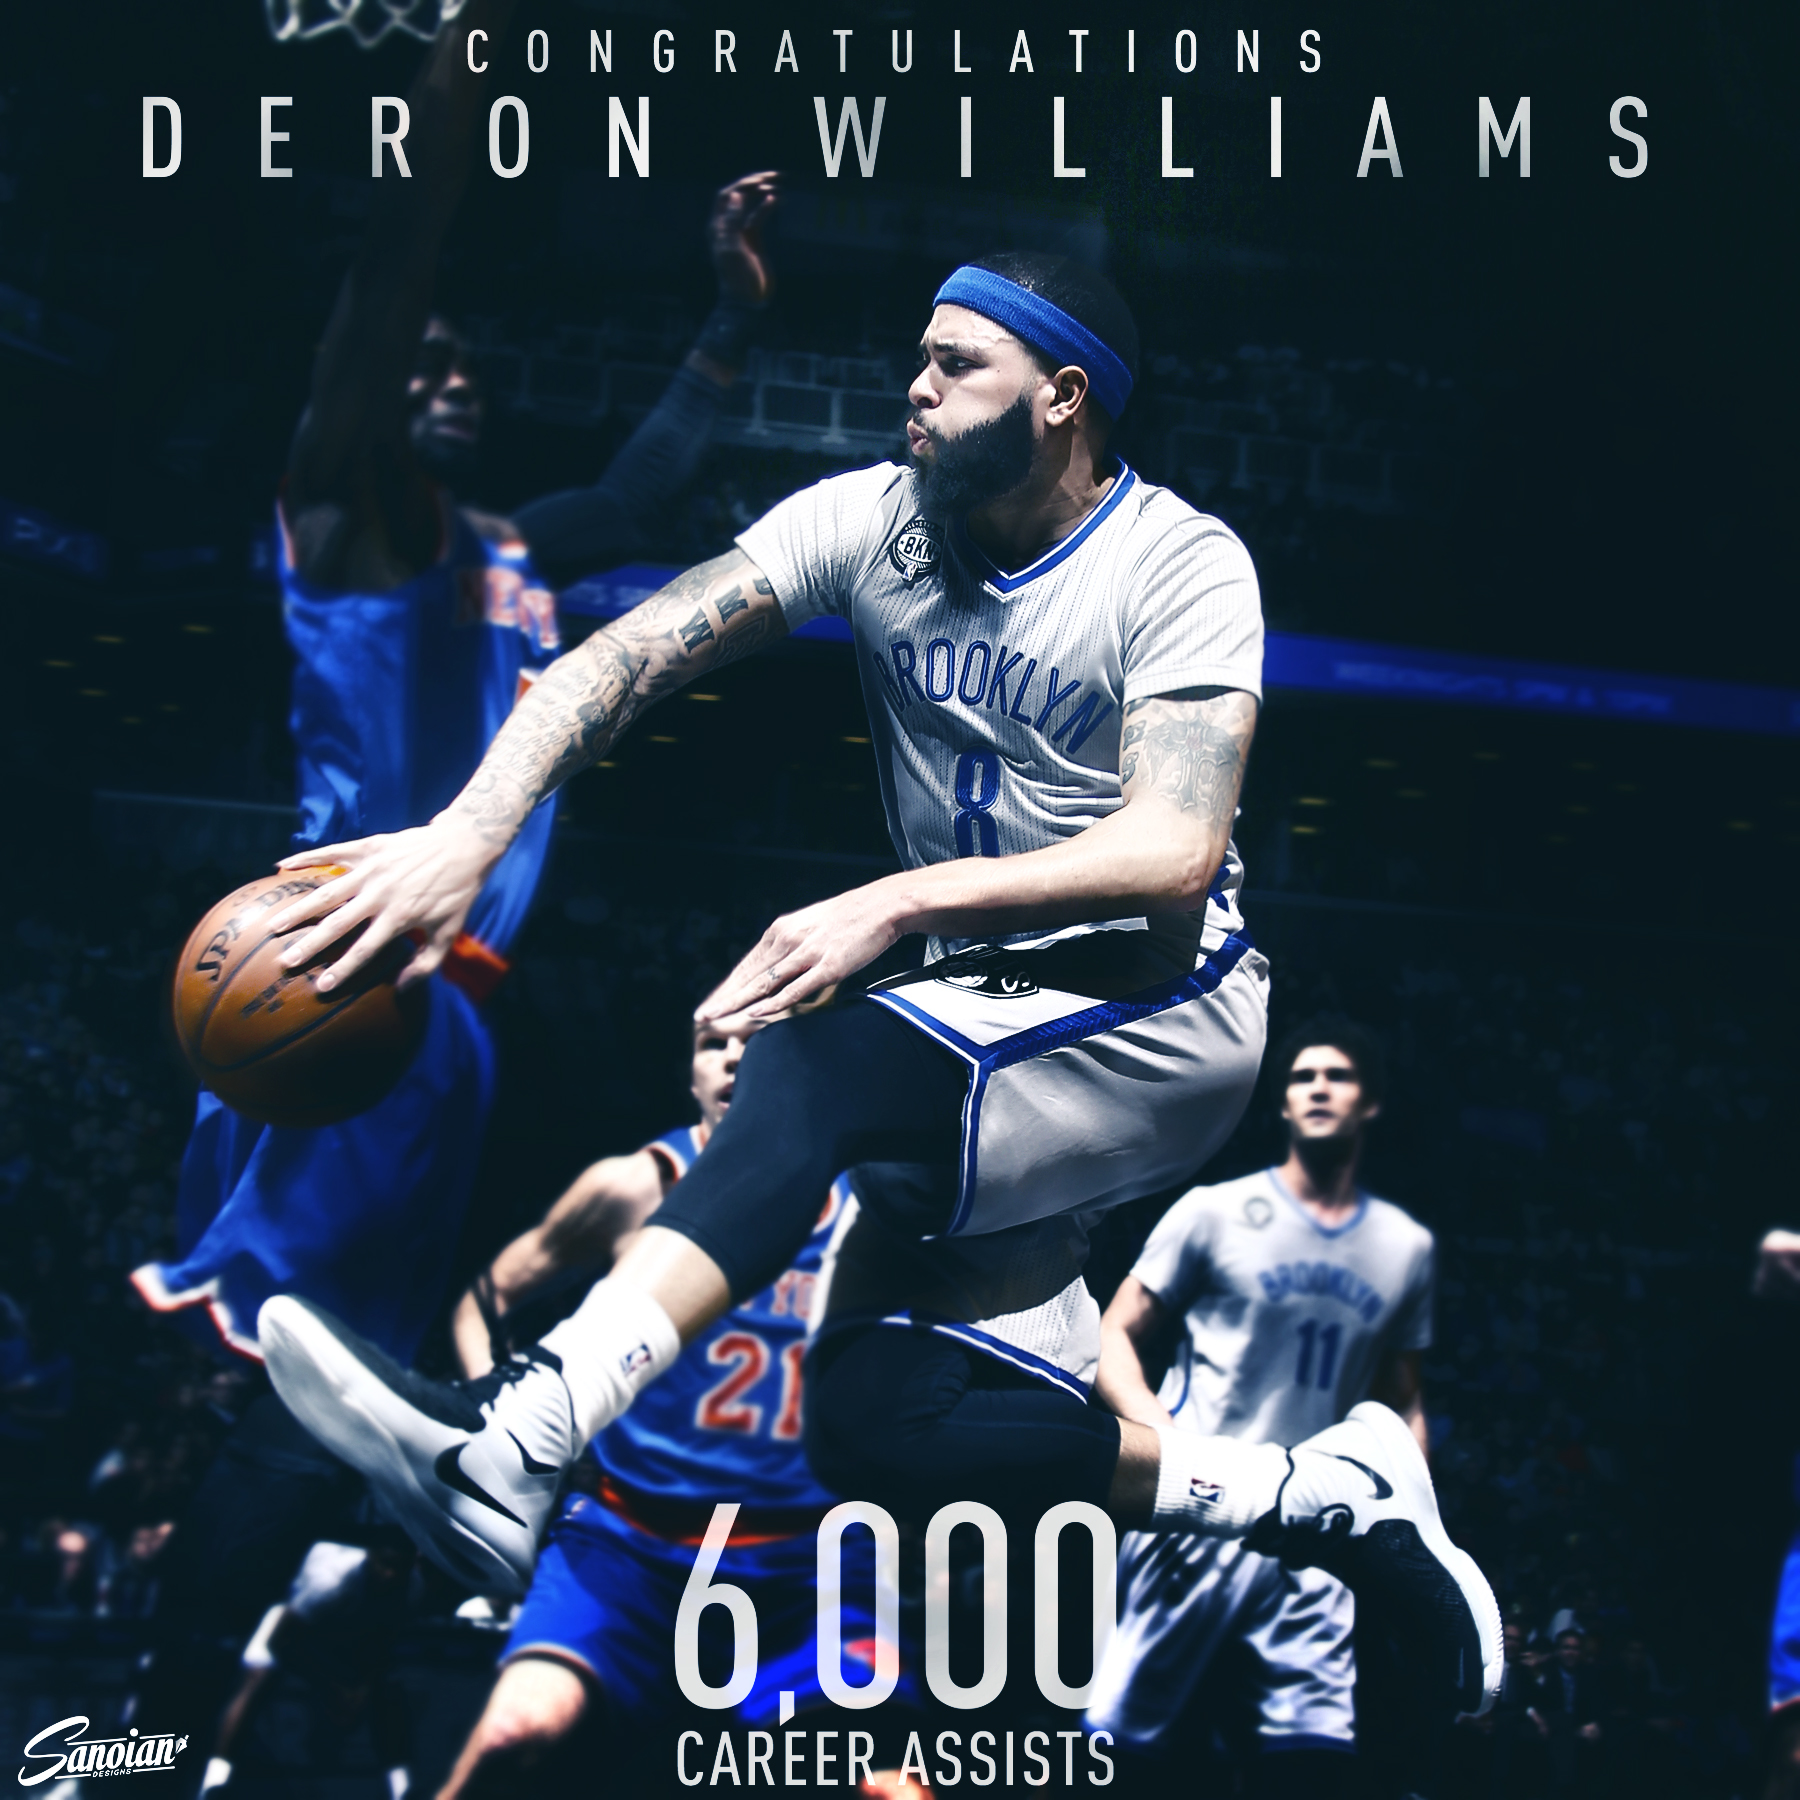 Deron Williams - 6,000 Career Assists